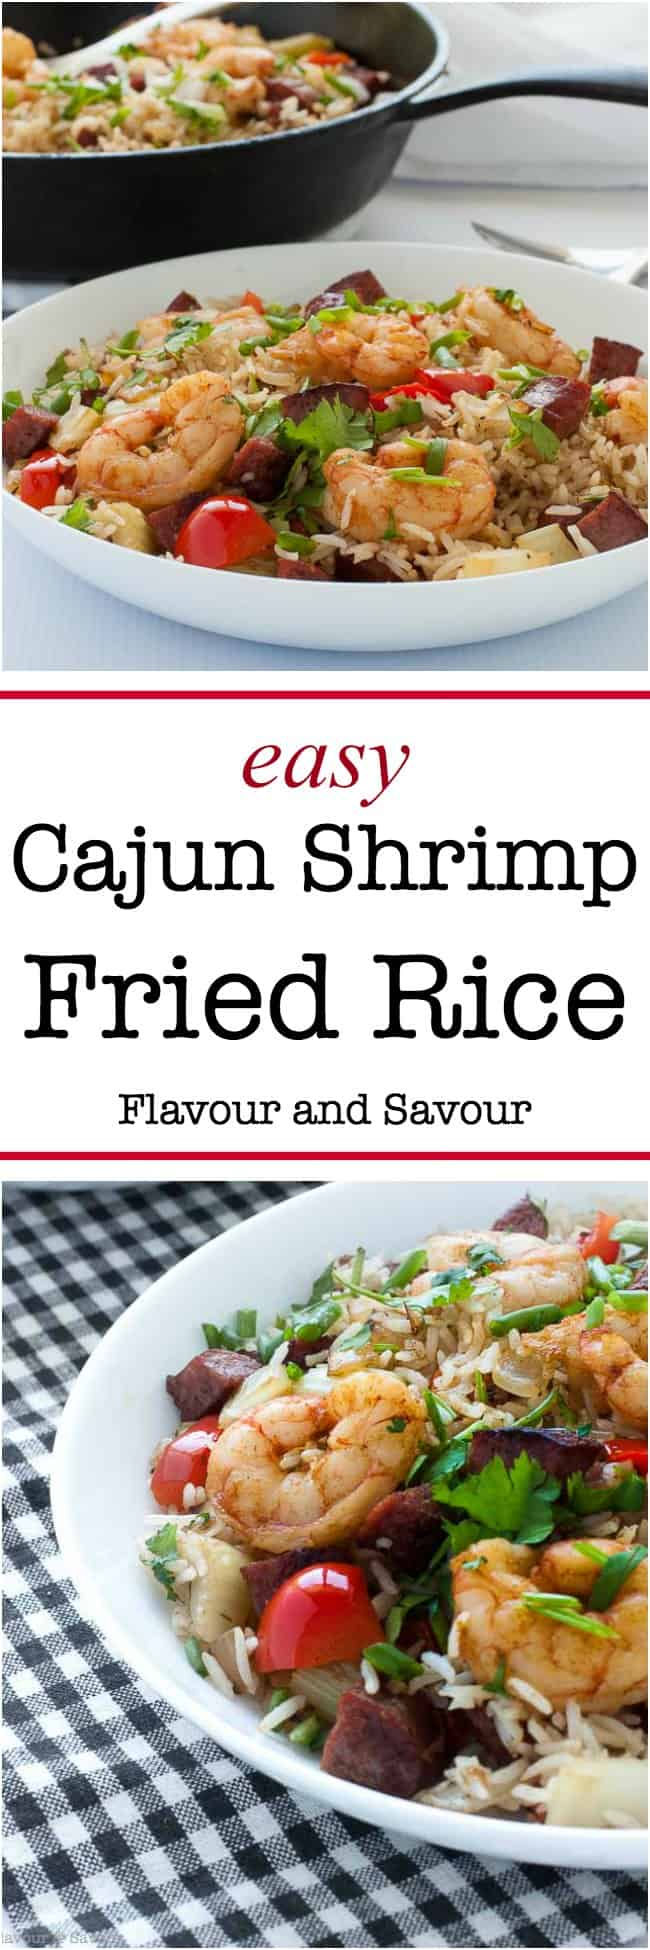 Easy cajun shrimp fried rice flavour and savour this hearty one pot 30 minute cajun shrimp fried rice brings the fabulous spicy forumfinder Image collections